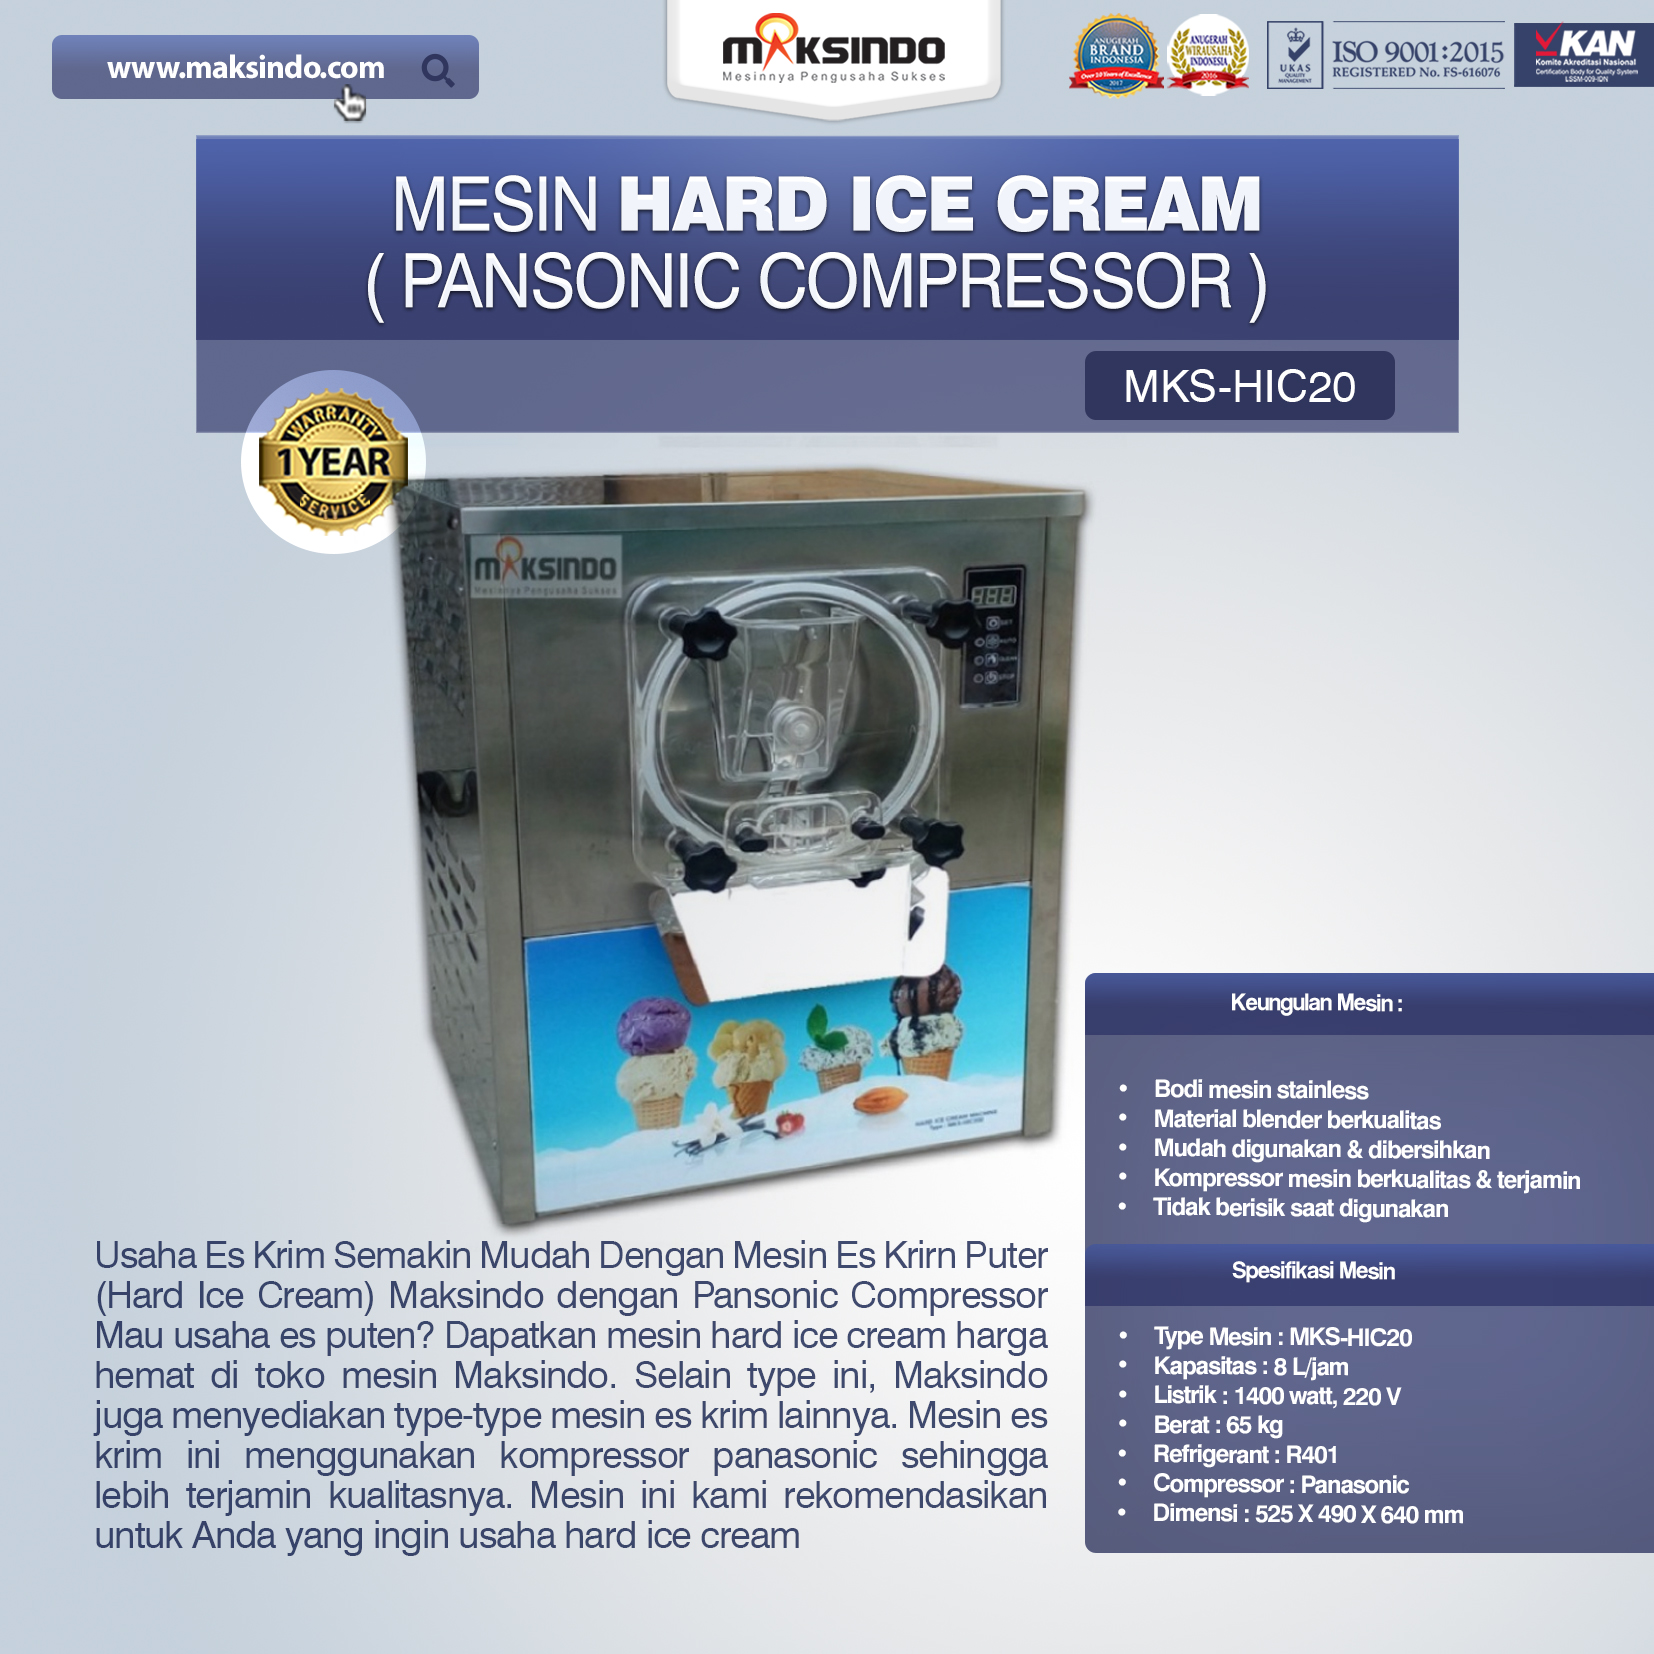 Jual Mesin Hard Ice Cream (HIC20) di Palembang